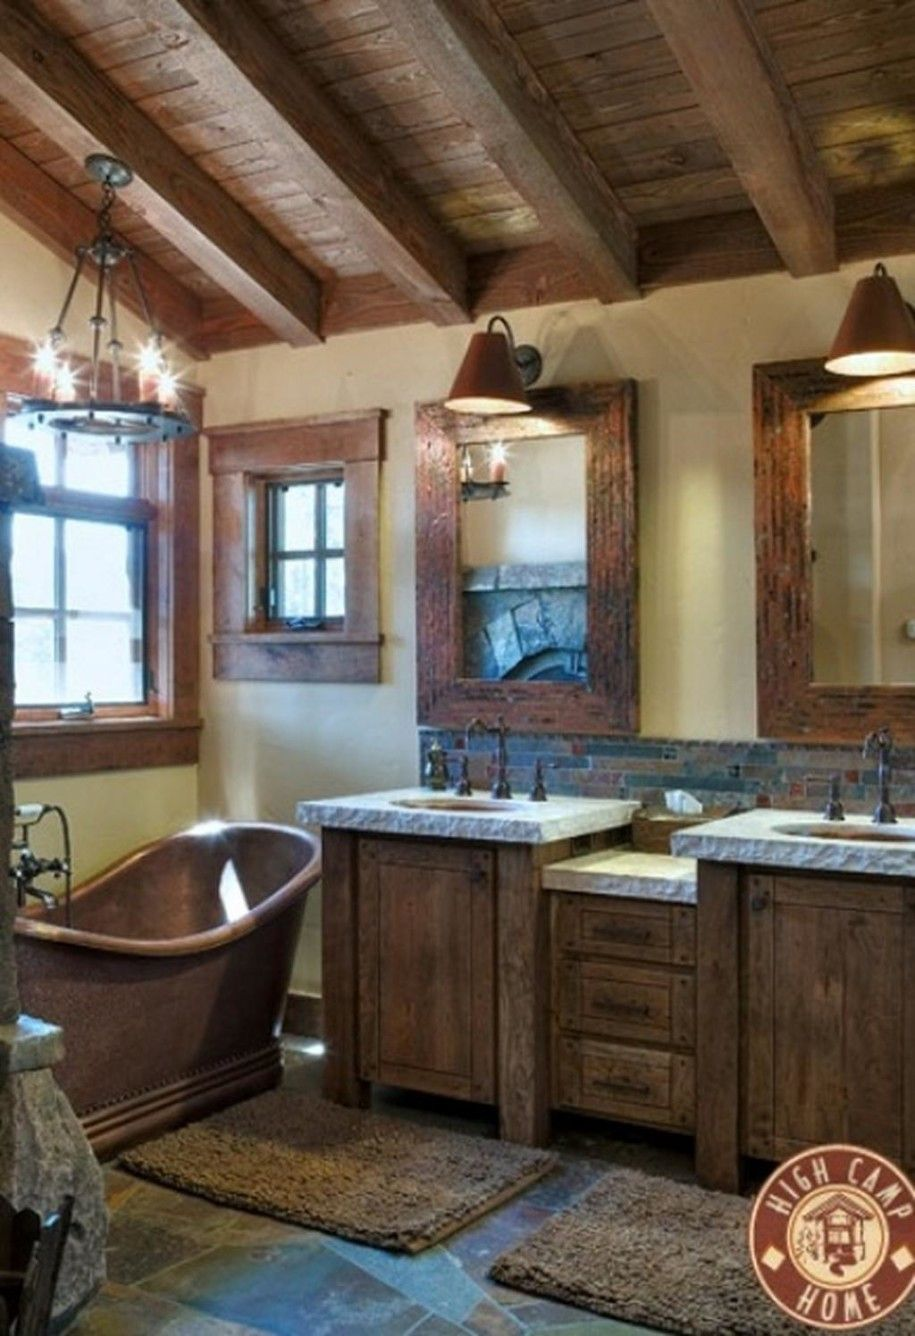 Bathroom Interior Designs Made In Rustic Barns Rustic